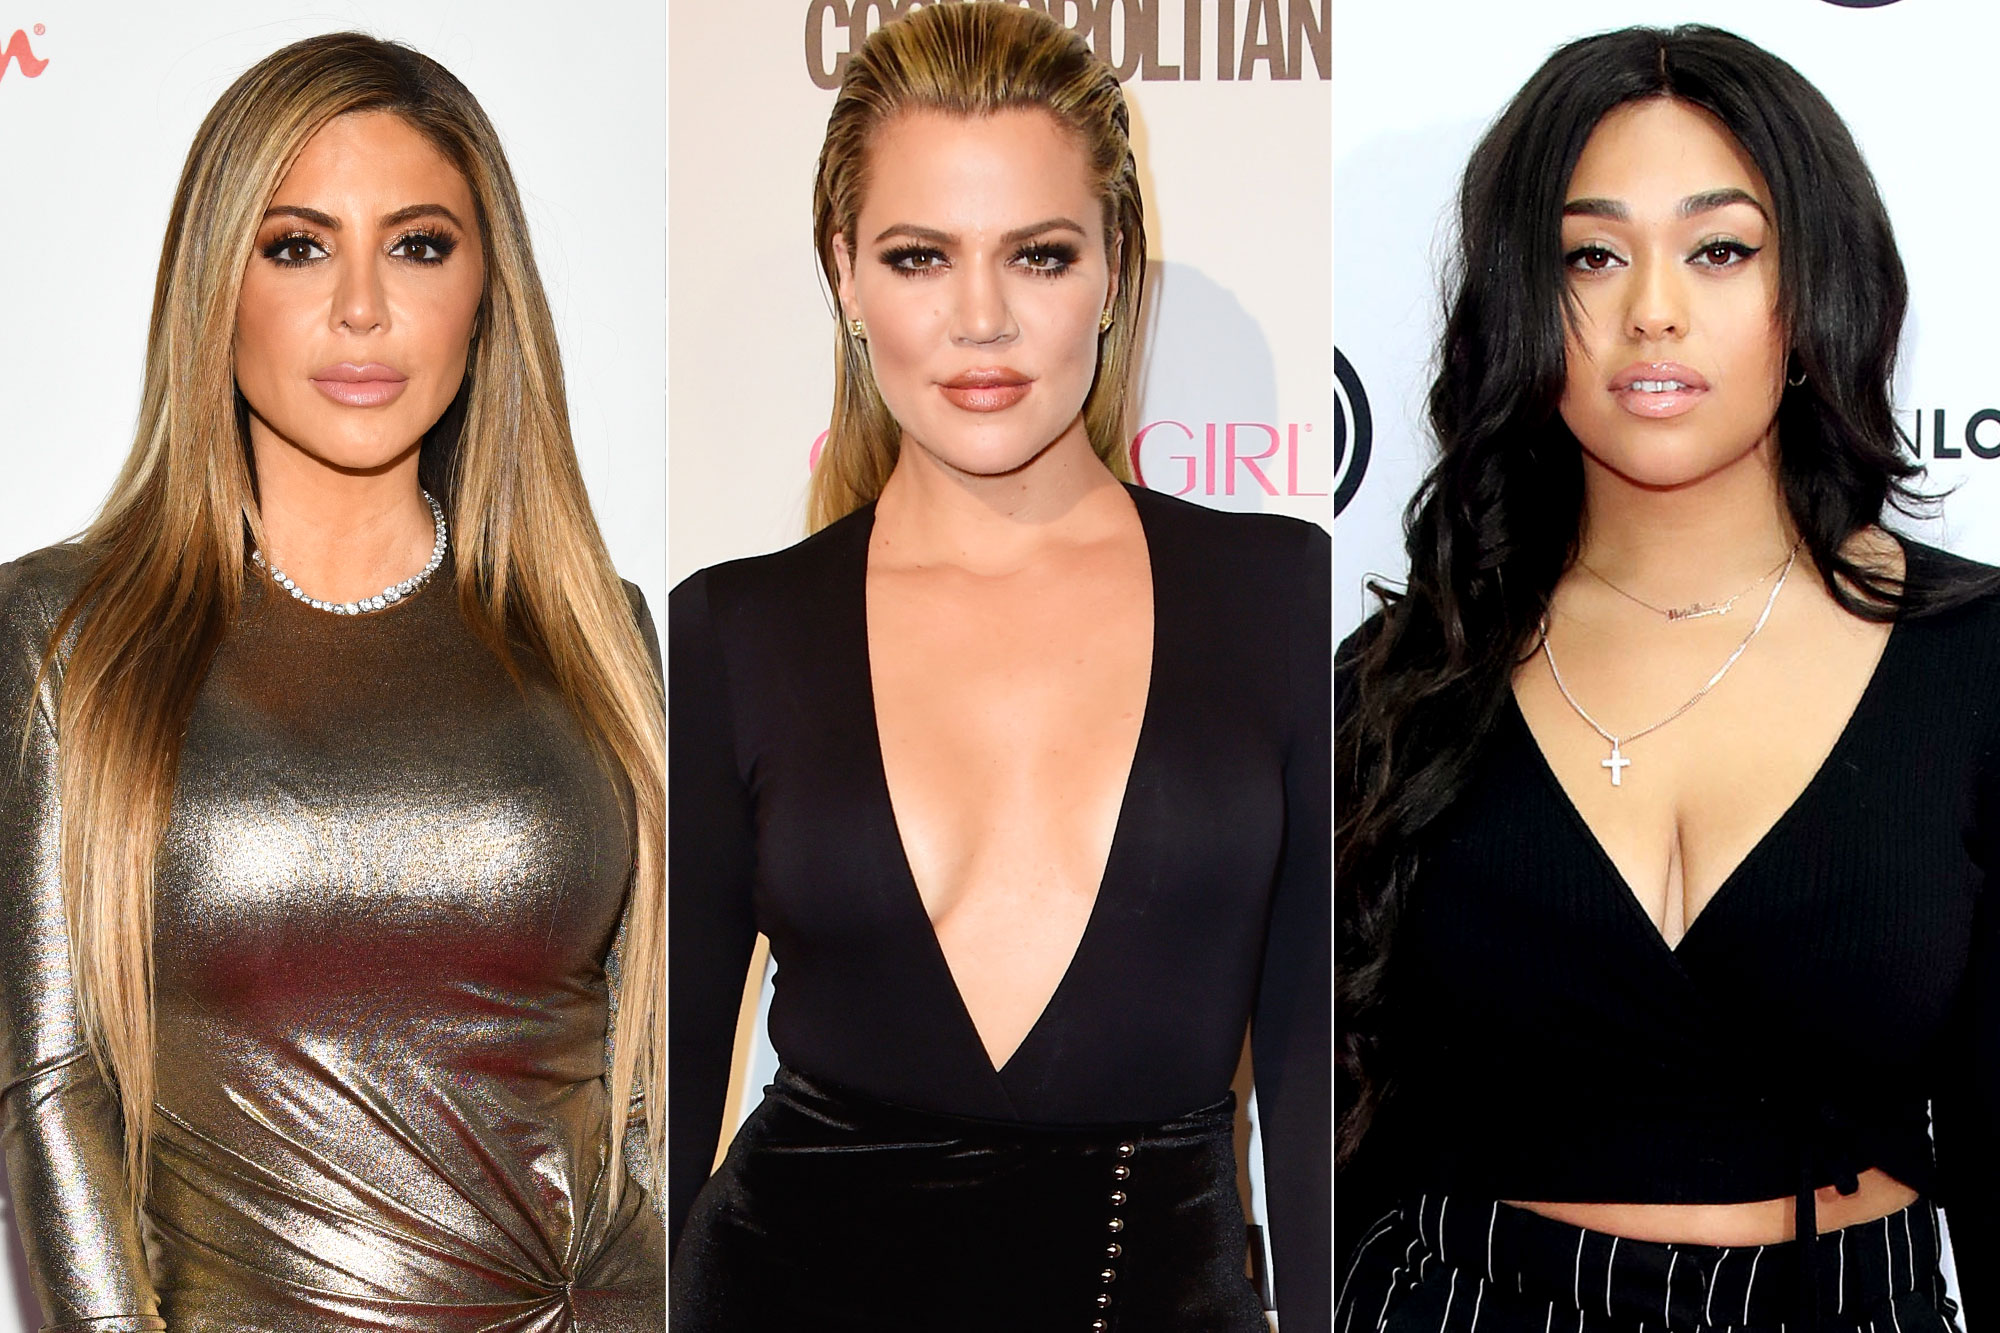 Larsa Pippen Says The Recent Flirt Between Jordyn Woods And Tristan Thompson Was Not The First One